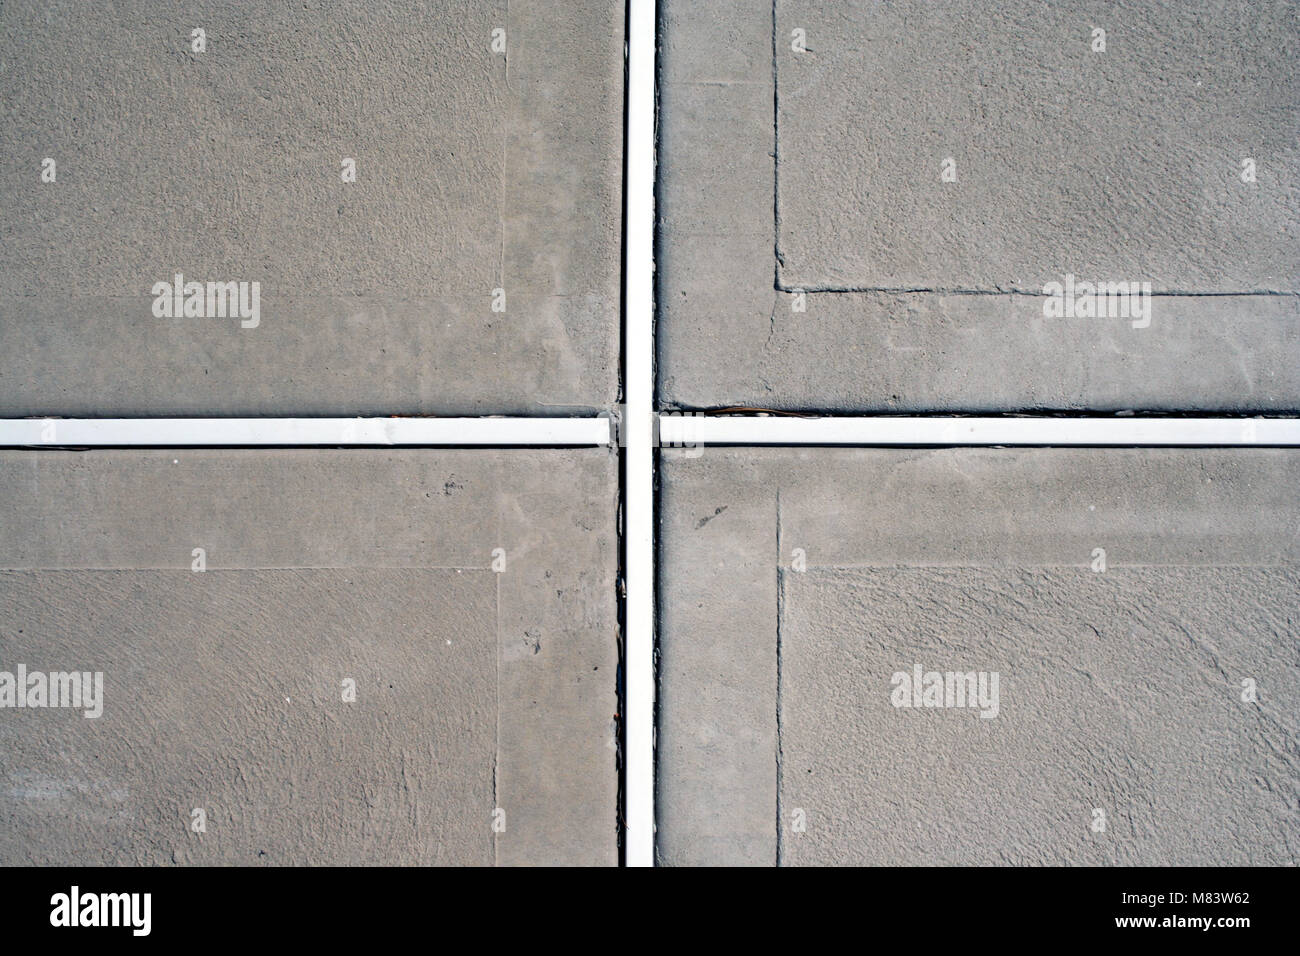 an image of a Concrete pool deck edges - Stock Image